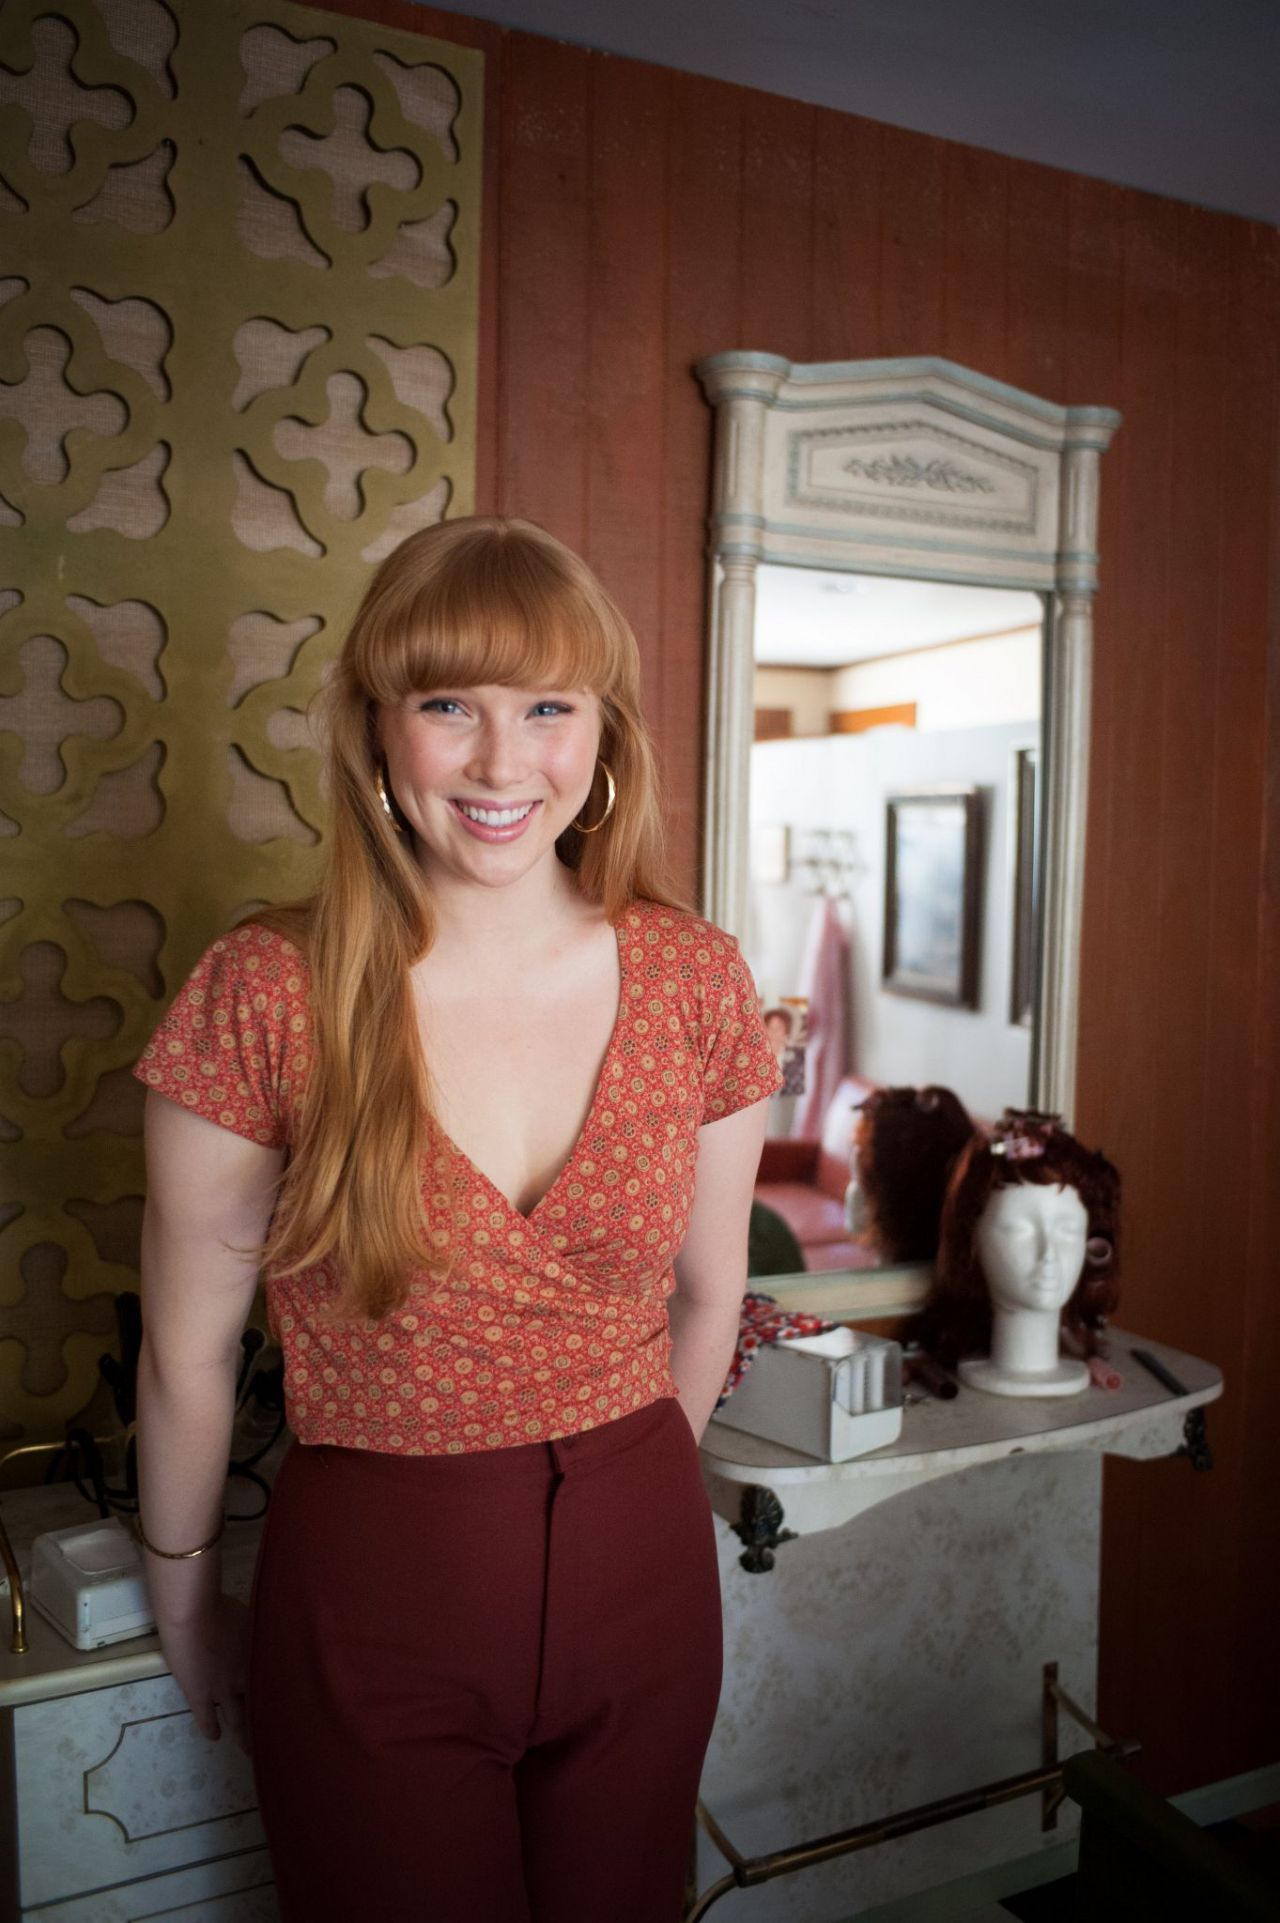 Molly Quinn The Haircut Short Film Pictures